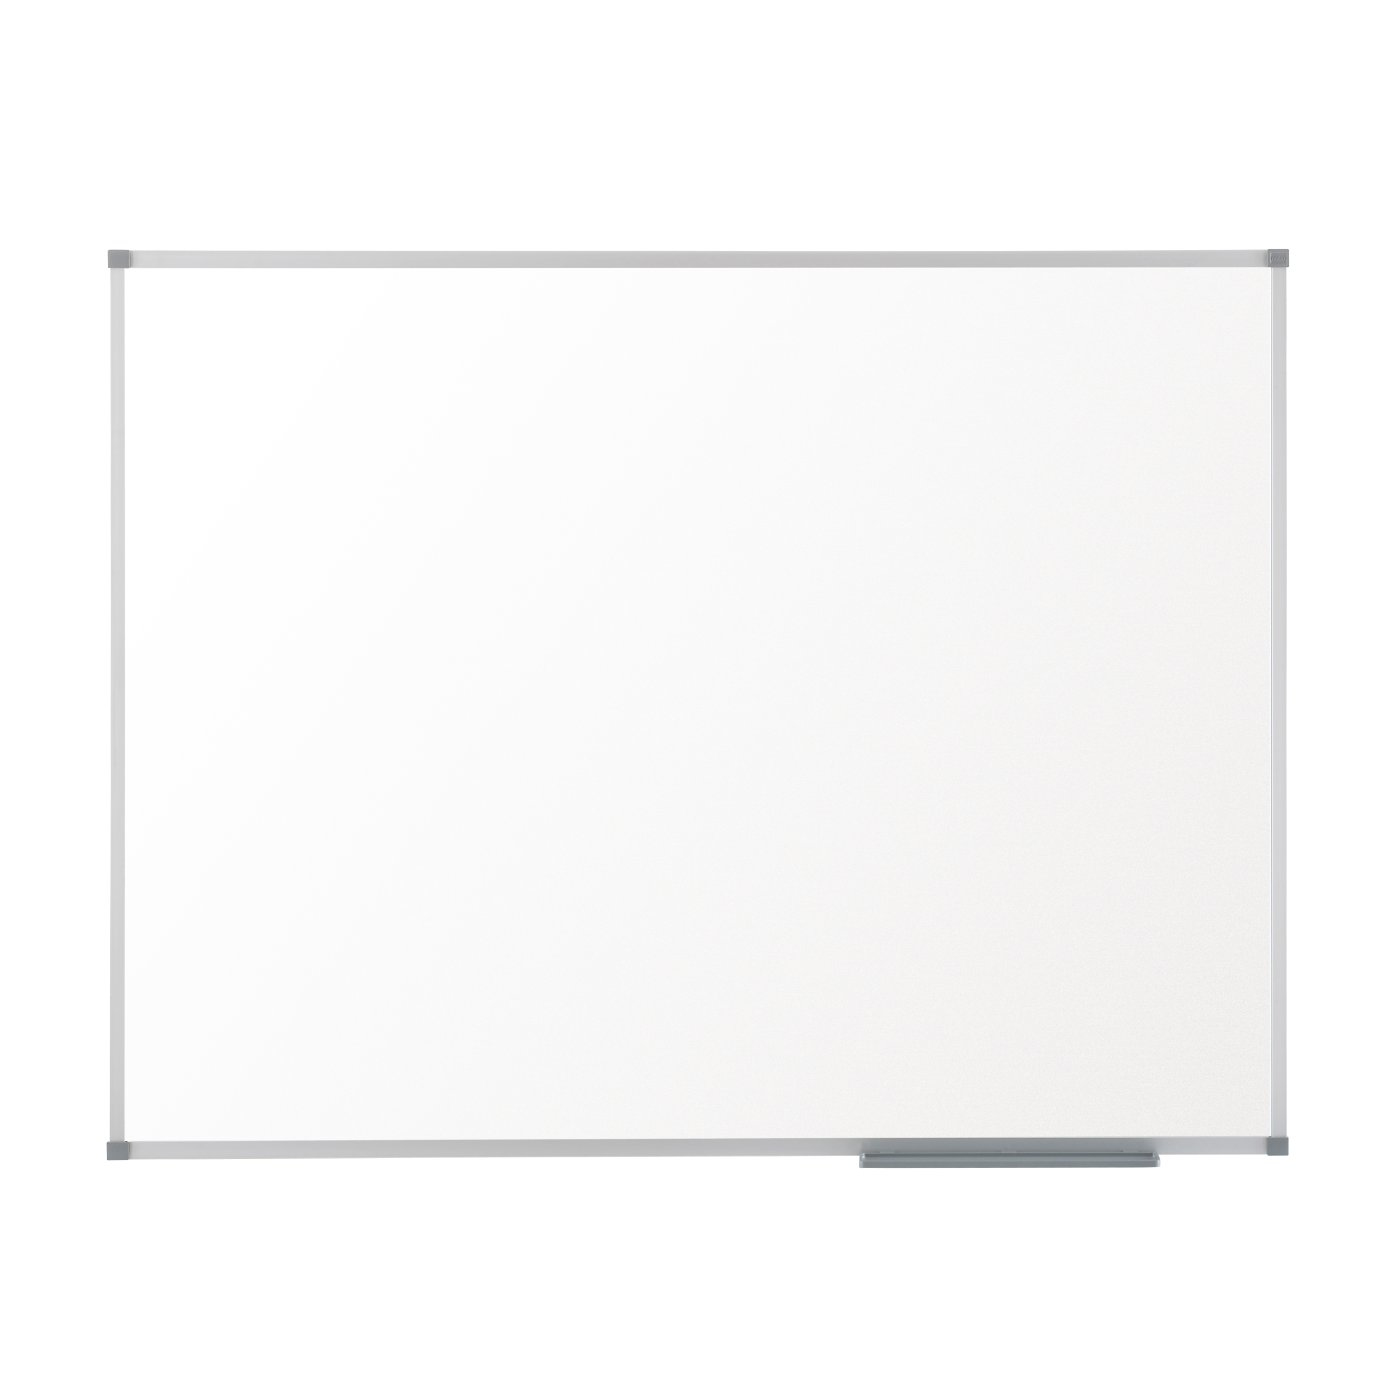 NOBO 1905203 BASIC MELAMINE NON MAGNETIC WHITEBOARD 1200X900MM WITH TRIM